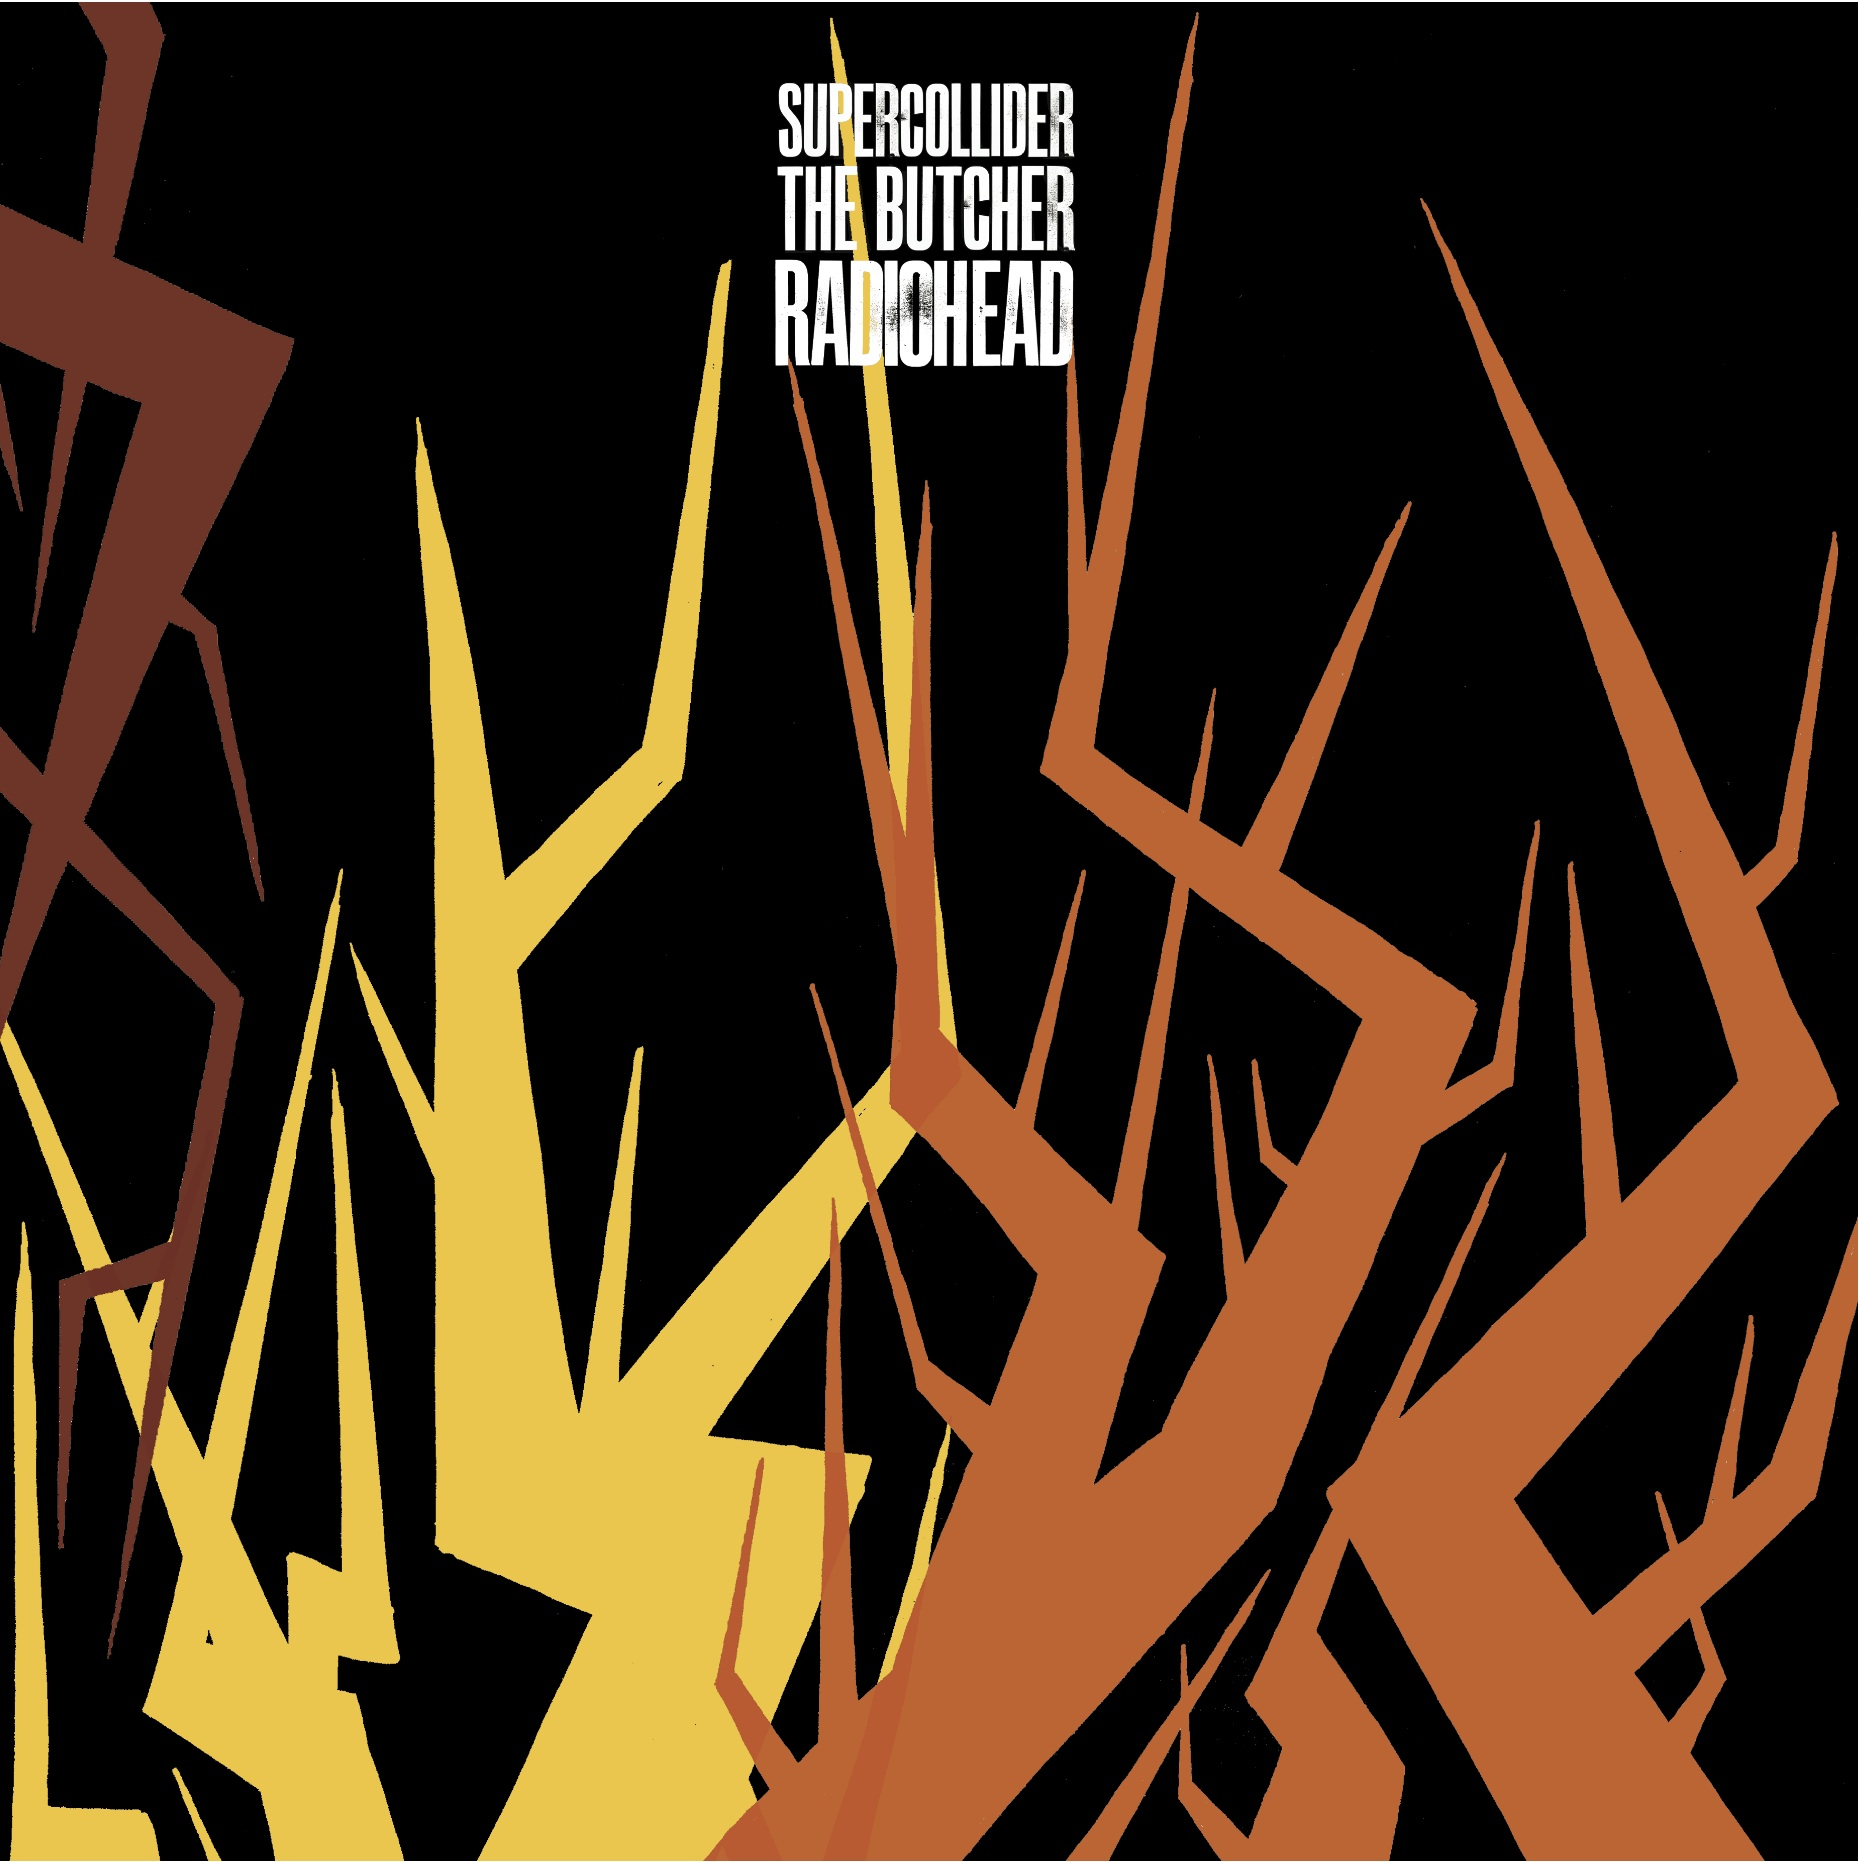 Supercollider - TheButcher HI RES